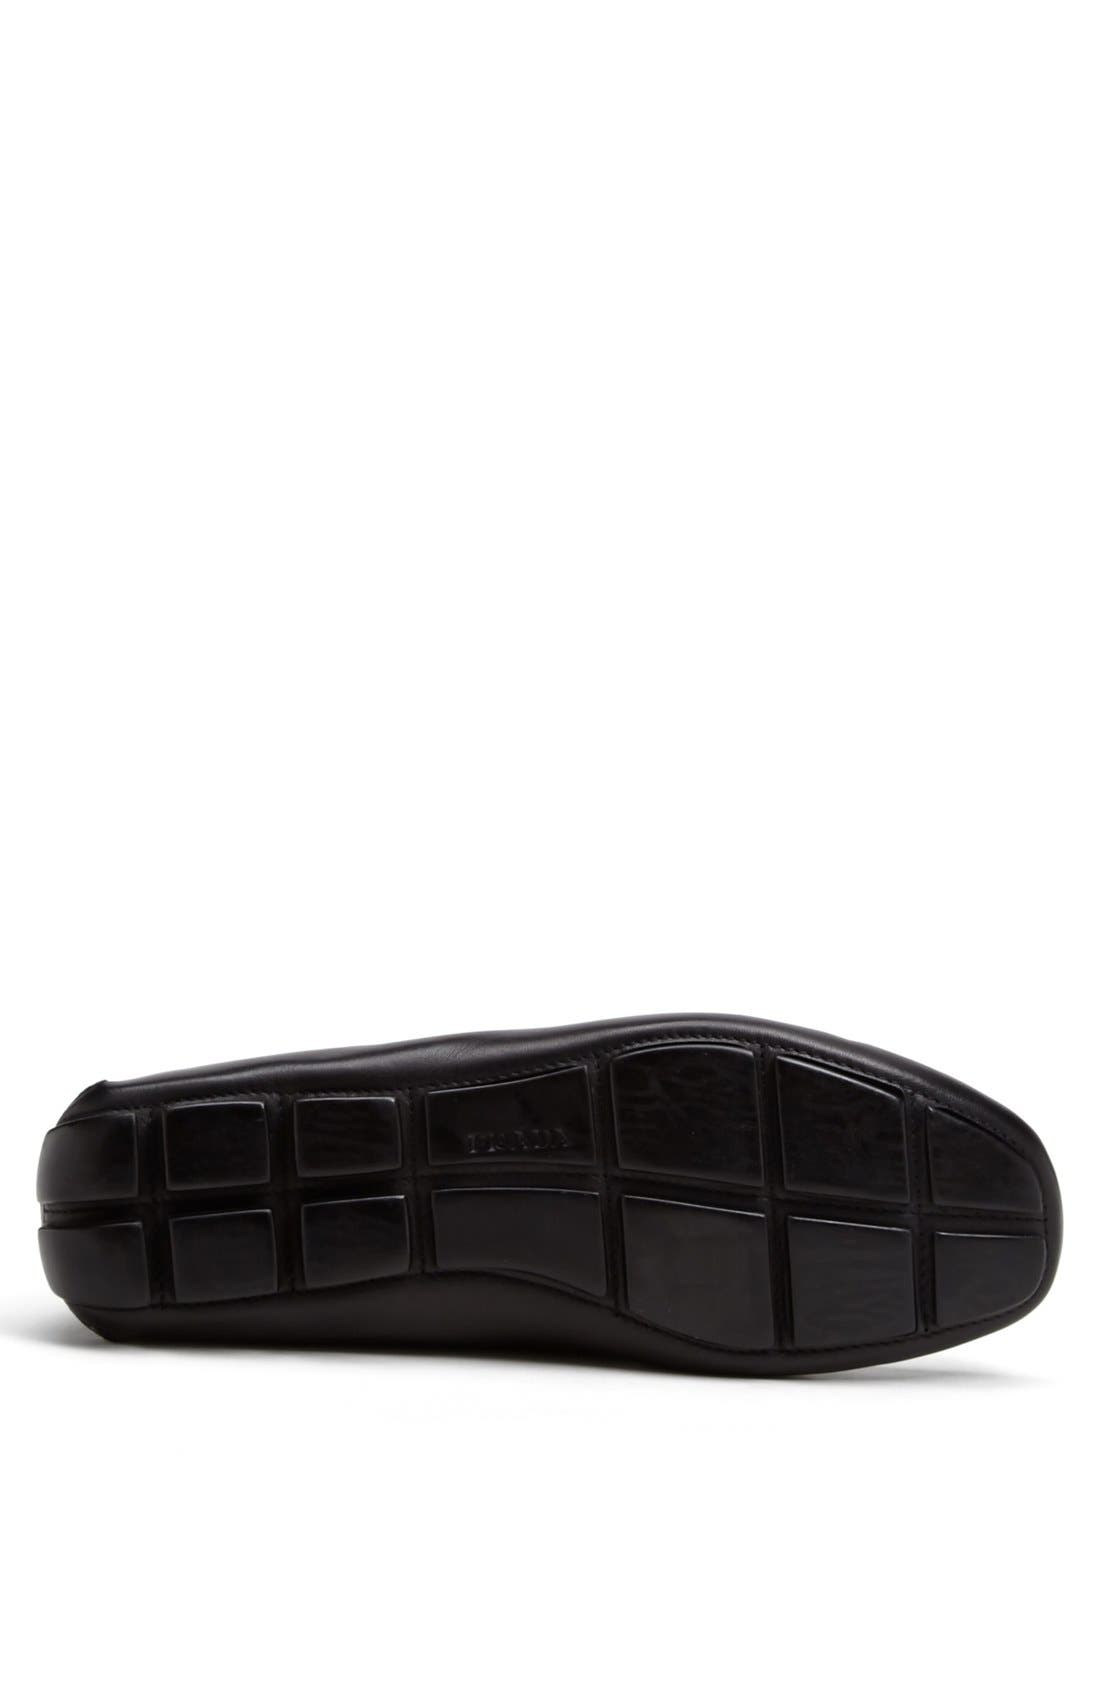 Alternate Image 4  - Prada Logo Bit Driving Shoe (Men)